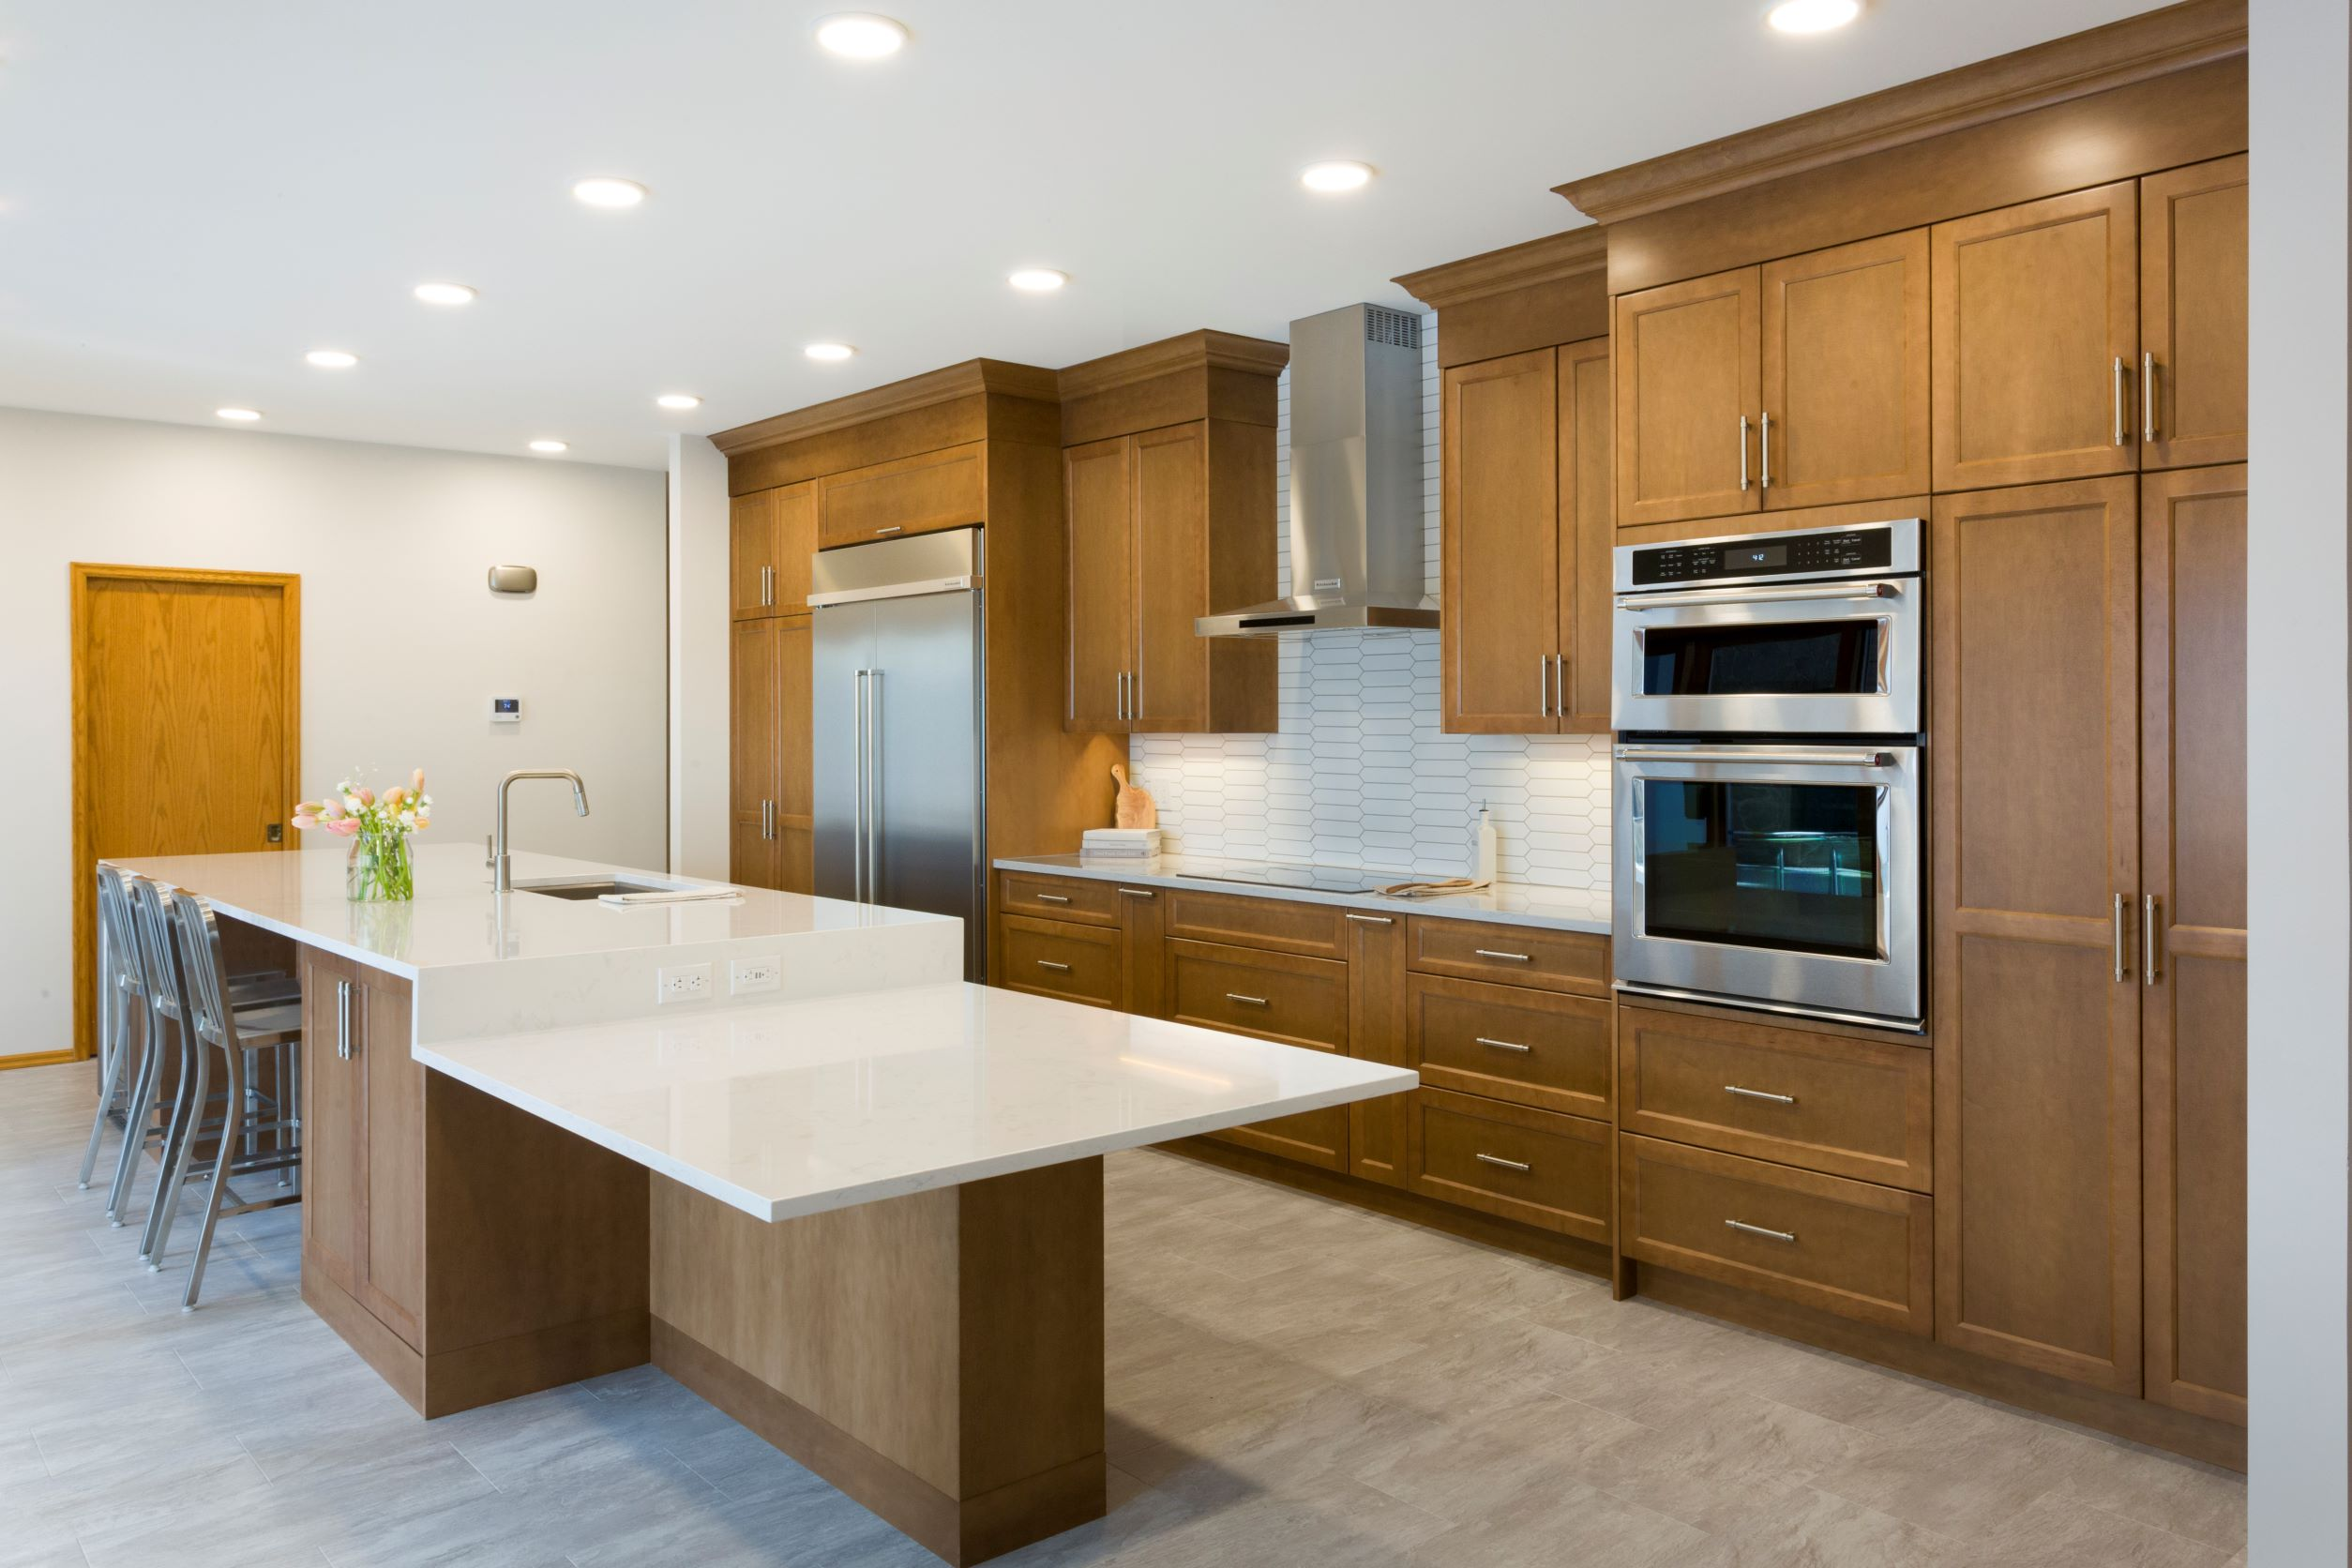 Kitchen Renovation by Dynasty Bathrooms